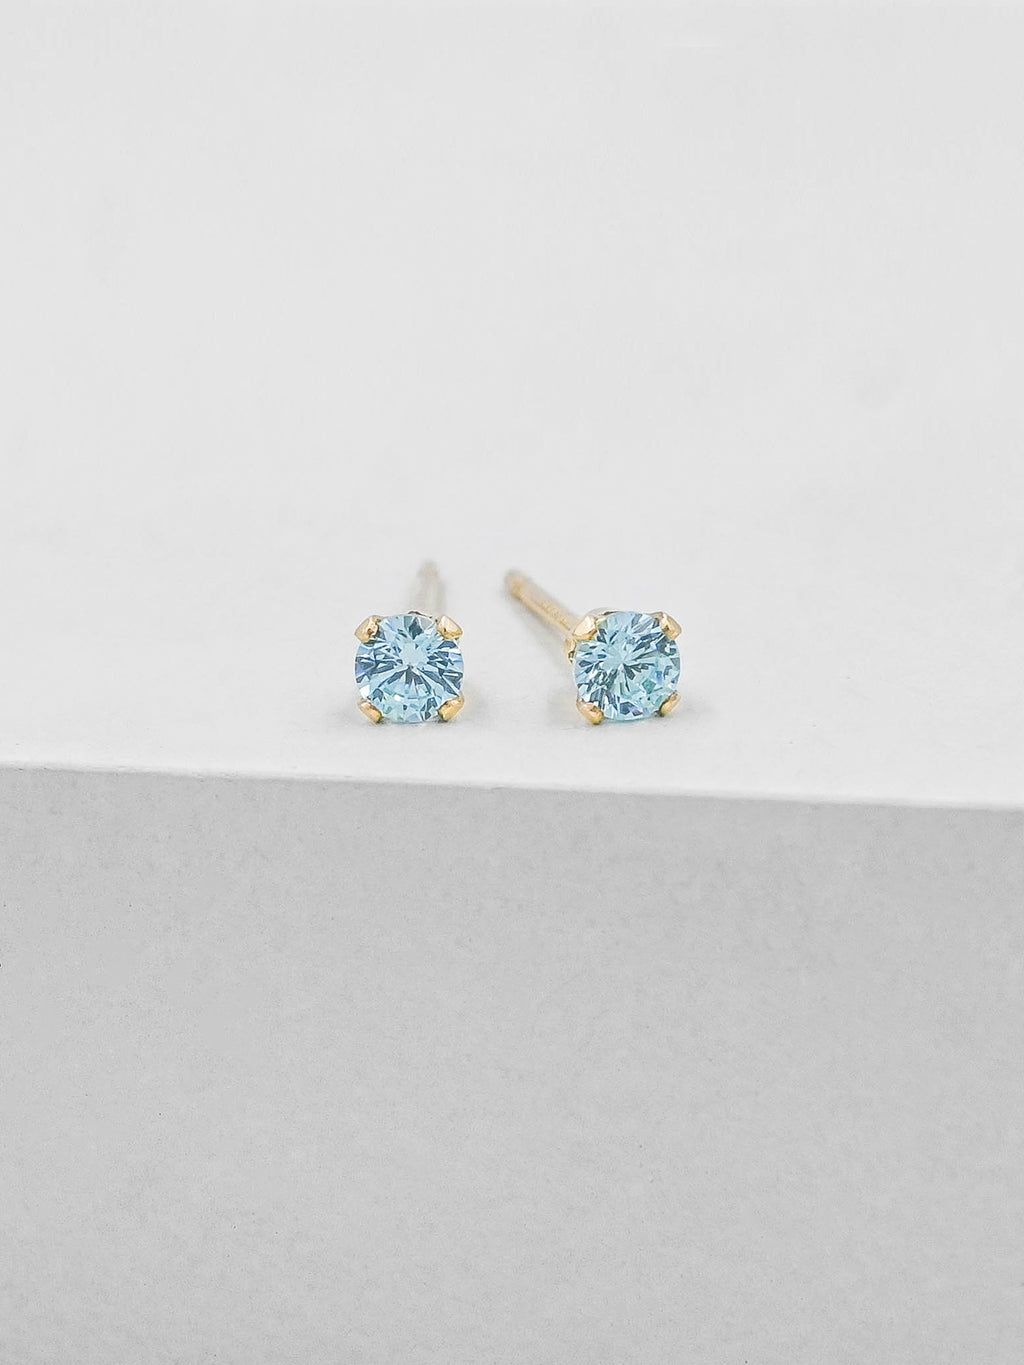 Aquamarine Round CZ Gold Plated Solitaire Stud Earrings by The Faint Hearted Jewelry